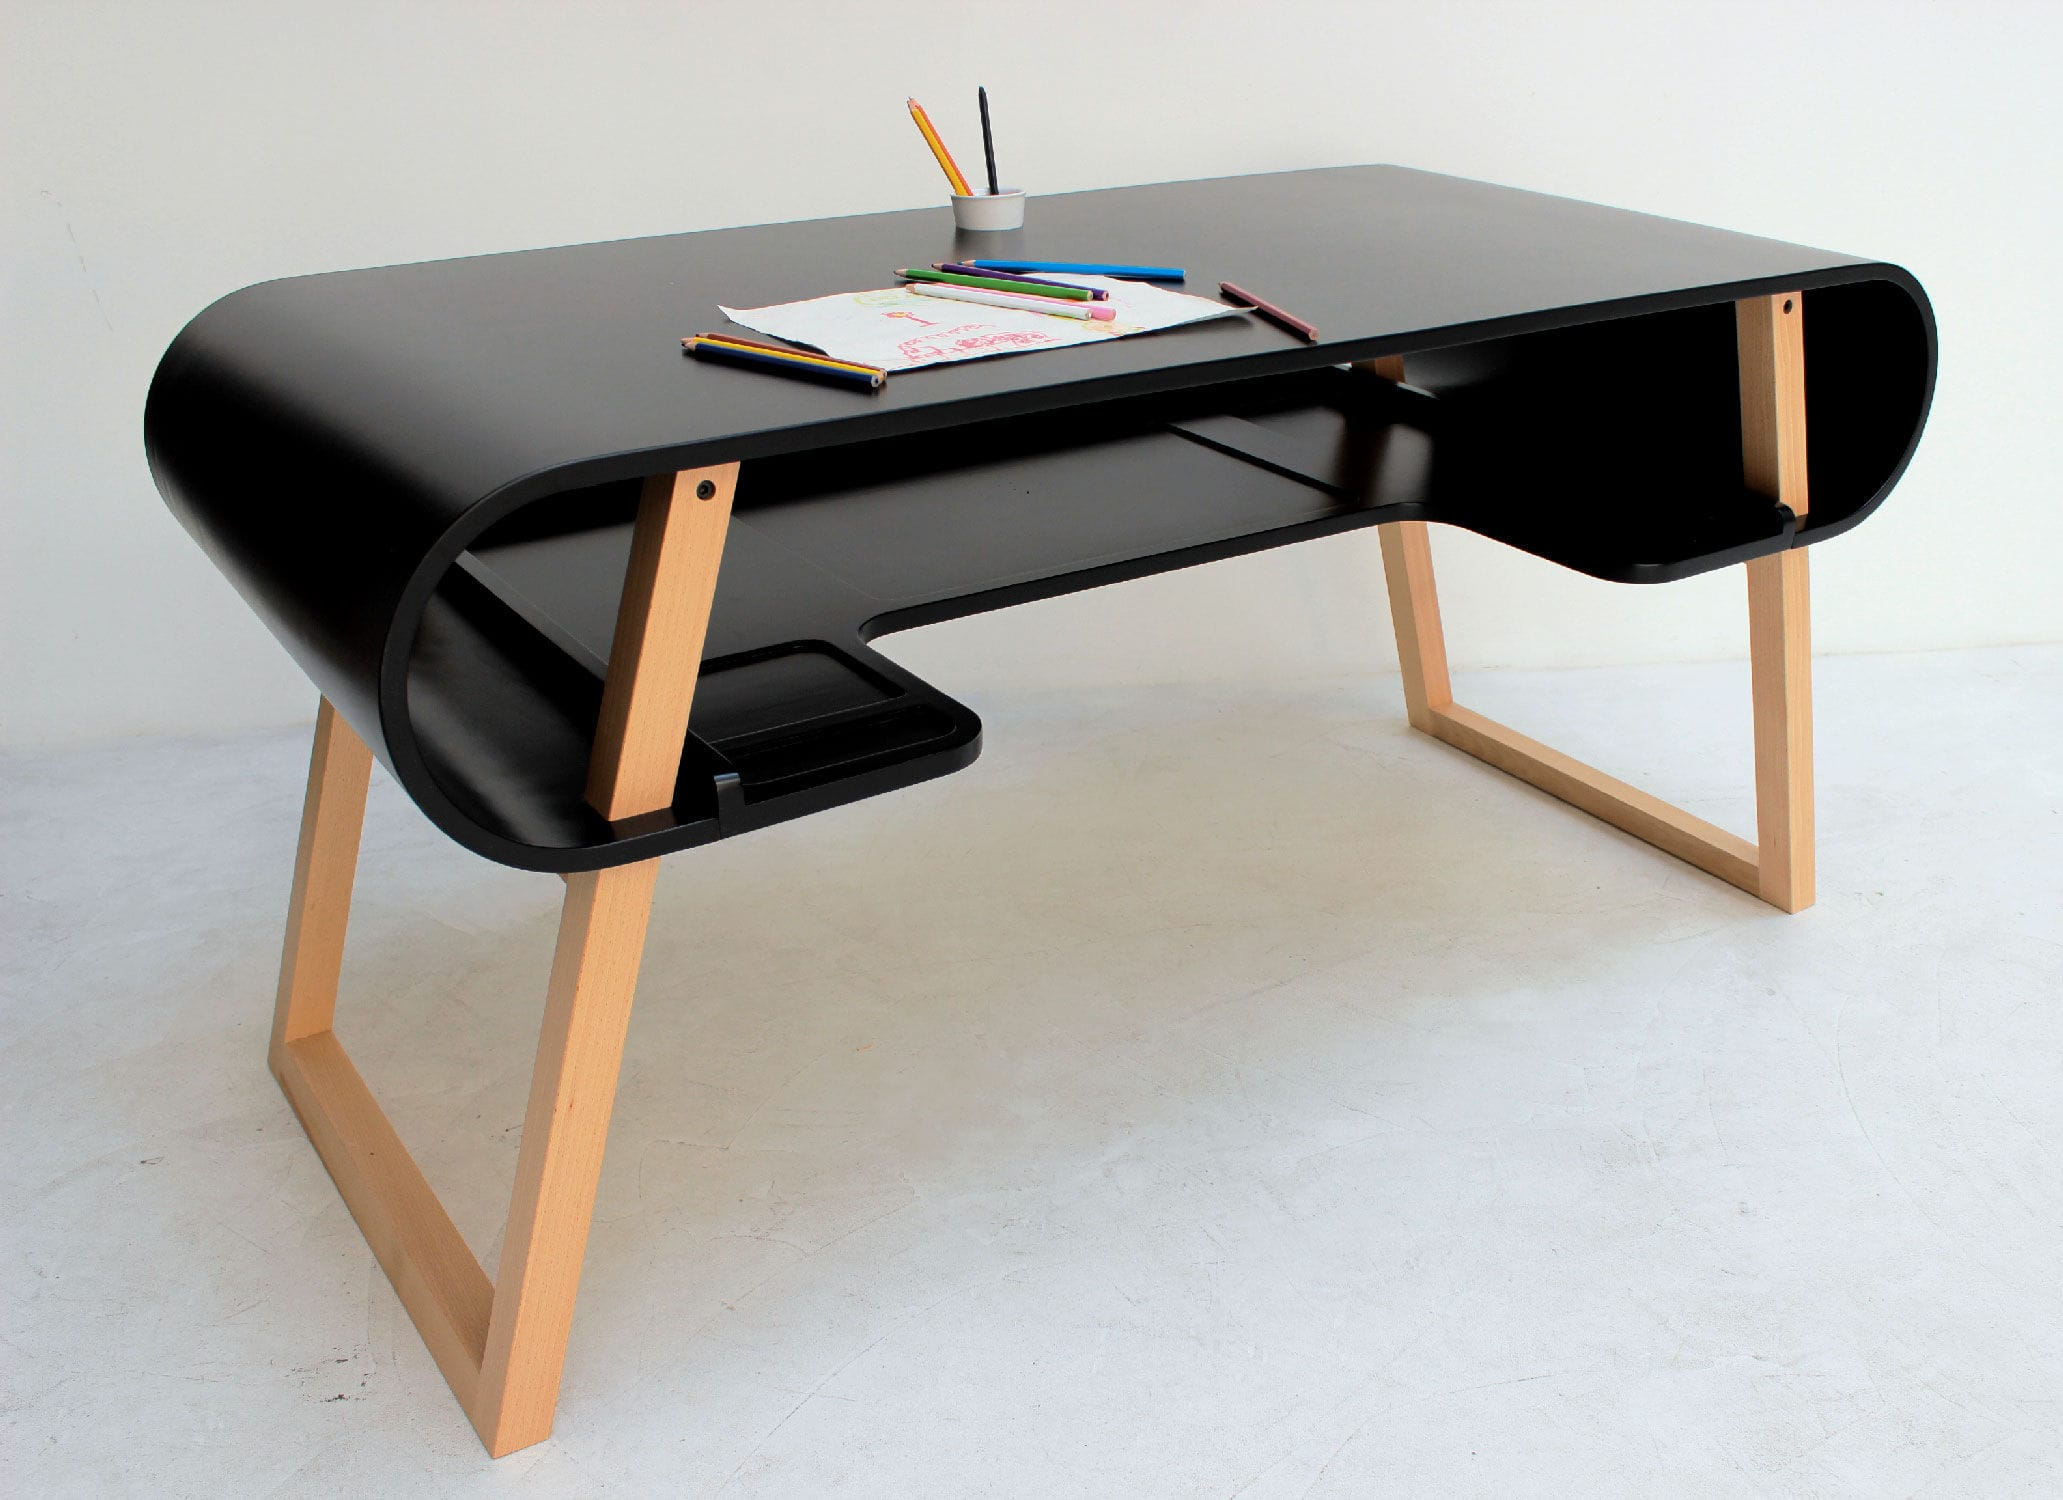 solid wood desk rubens by jeanfranois bellemre compagnie - Solid Wood Desk